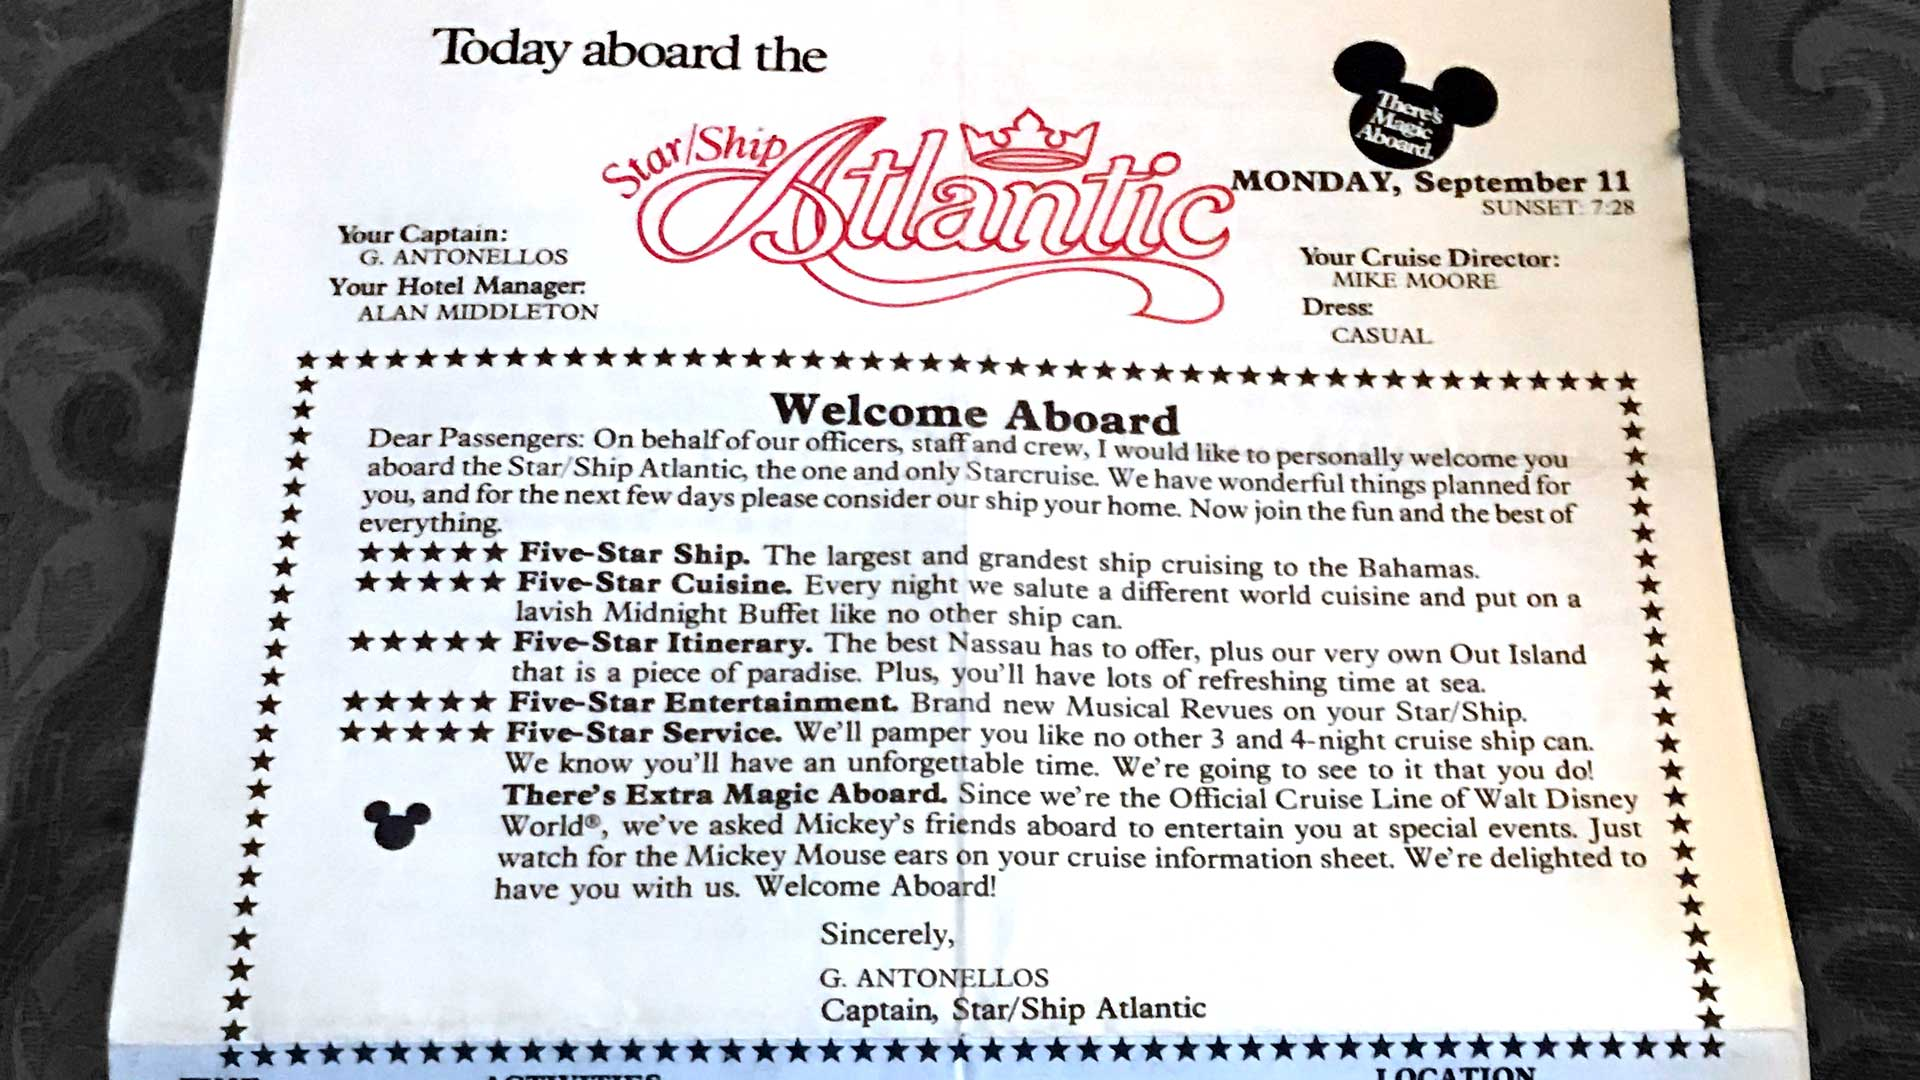 Premier Cruise Line Daily Schedule Atlantic 19890911 Welcome Aboard